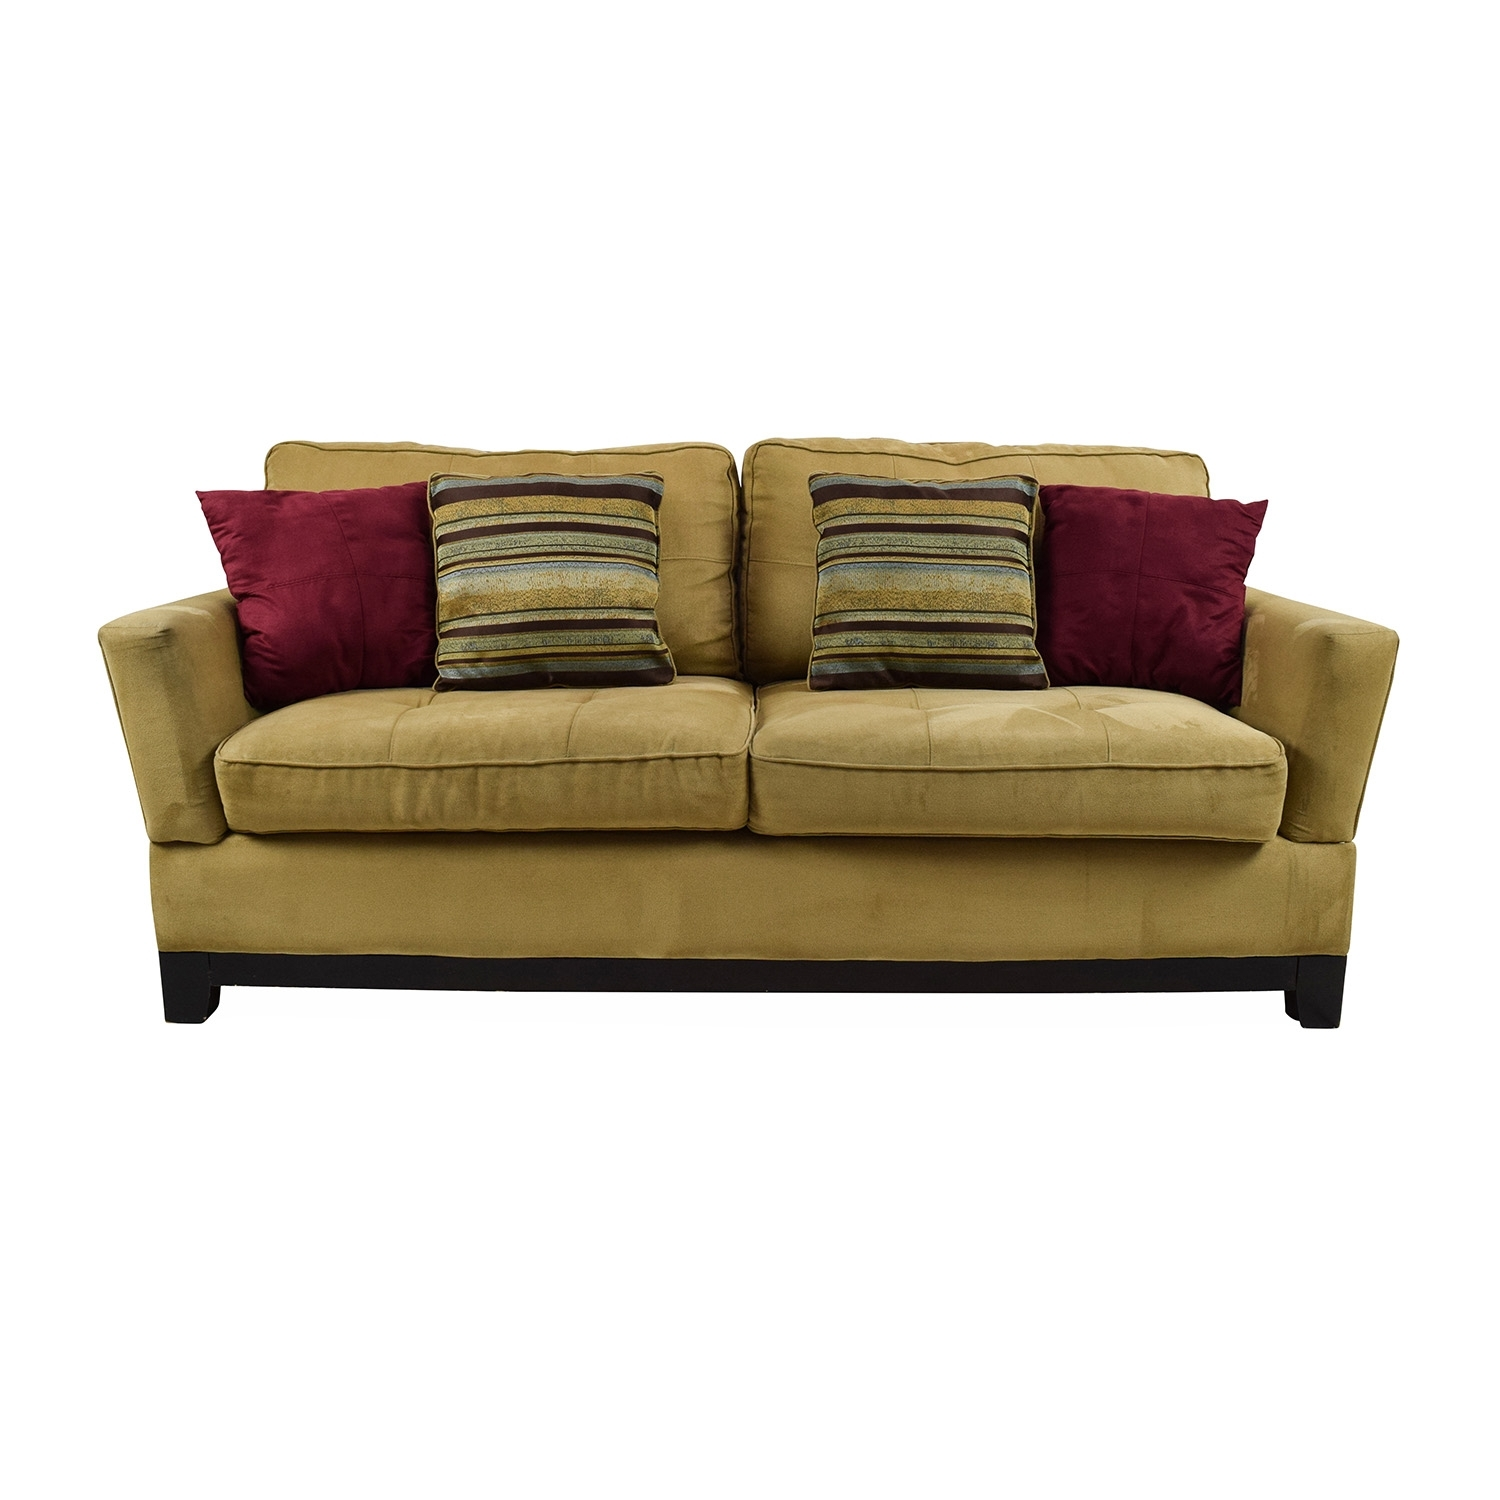 78% Off - Jennifer Convertibles Jennifer Convertibles Tan Sofa / Sofas within Jennifer Convertibles Sectional Sofas